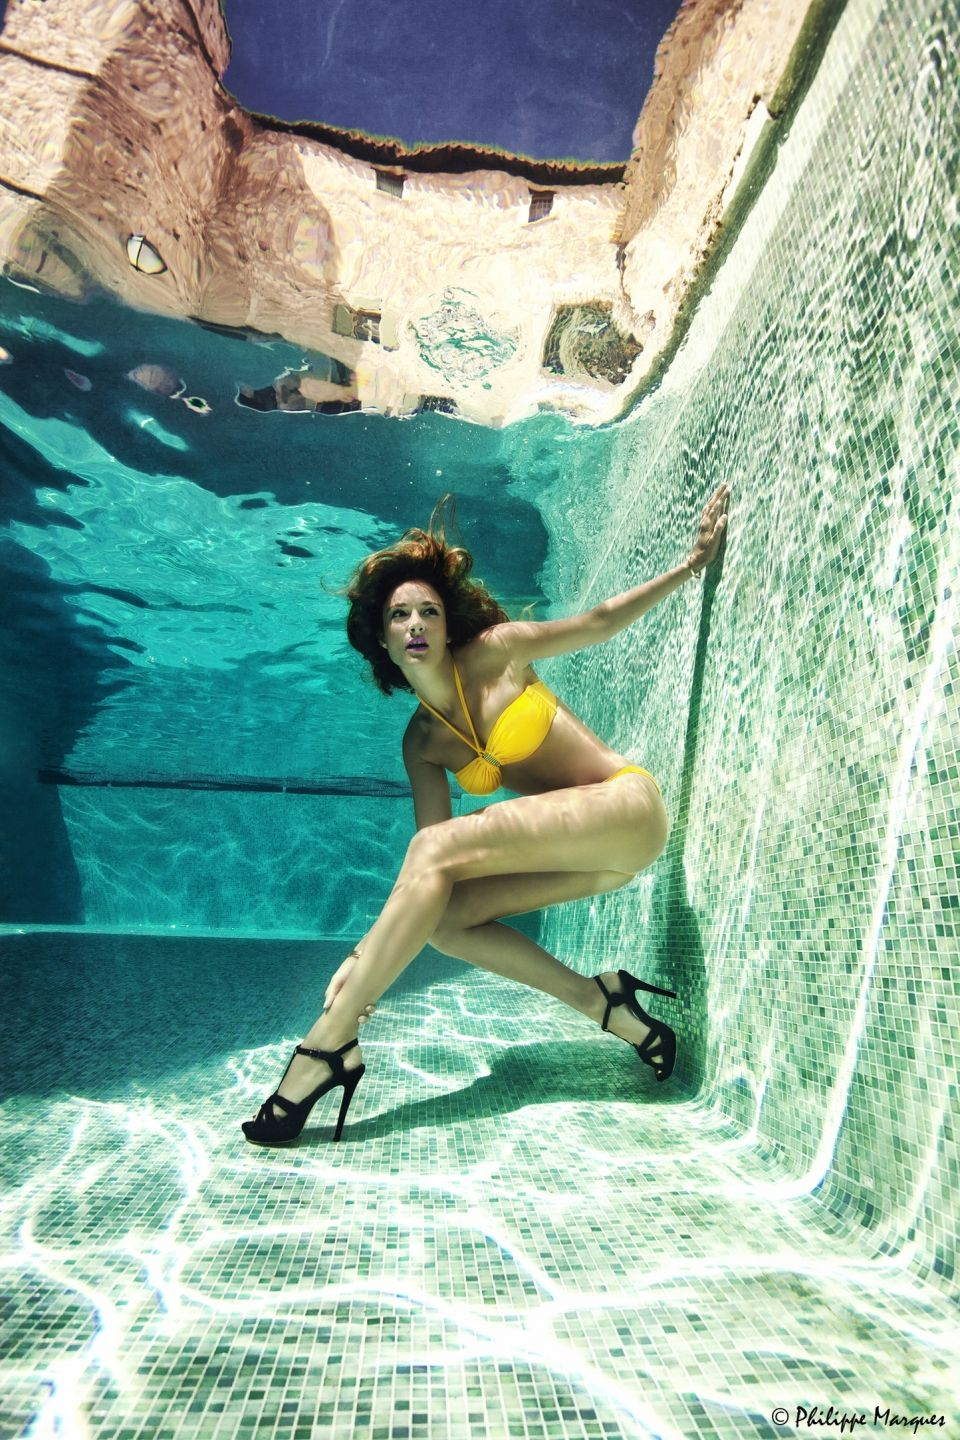 Underwater fashion picture in the pool of the Villeneuve-Minervois'Castel